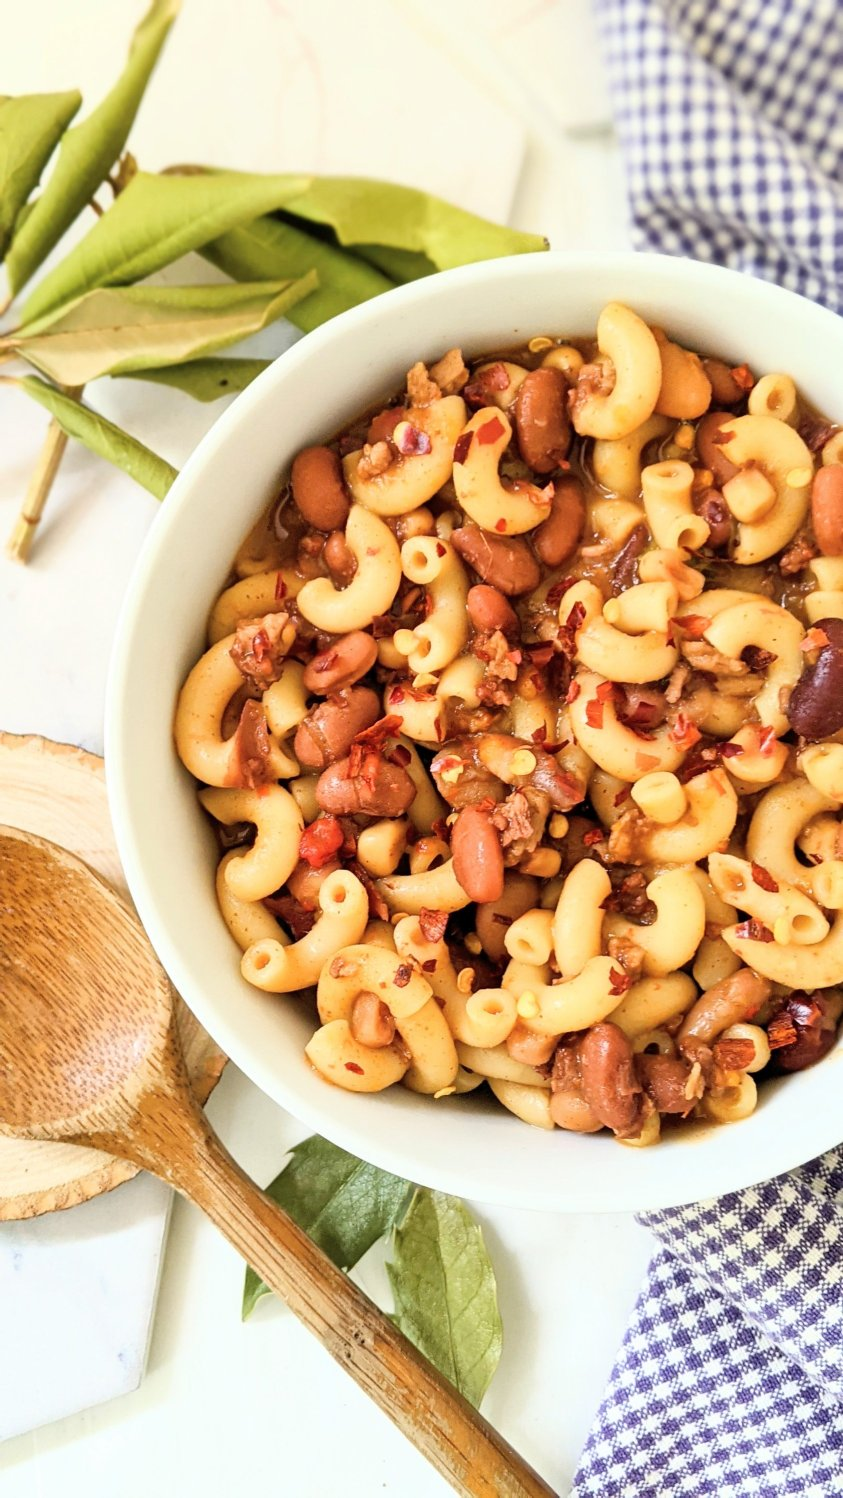 vegan cowboy pasta recipes how macaroni noodles and beans for dinner cowboy recipes vegan gluten free dinner ideas with pantry staple beans and noodle dishes for dinner